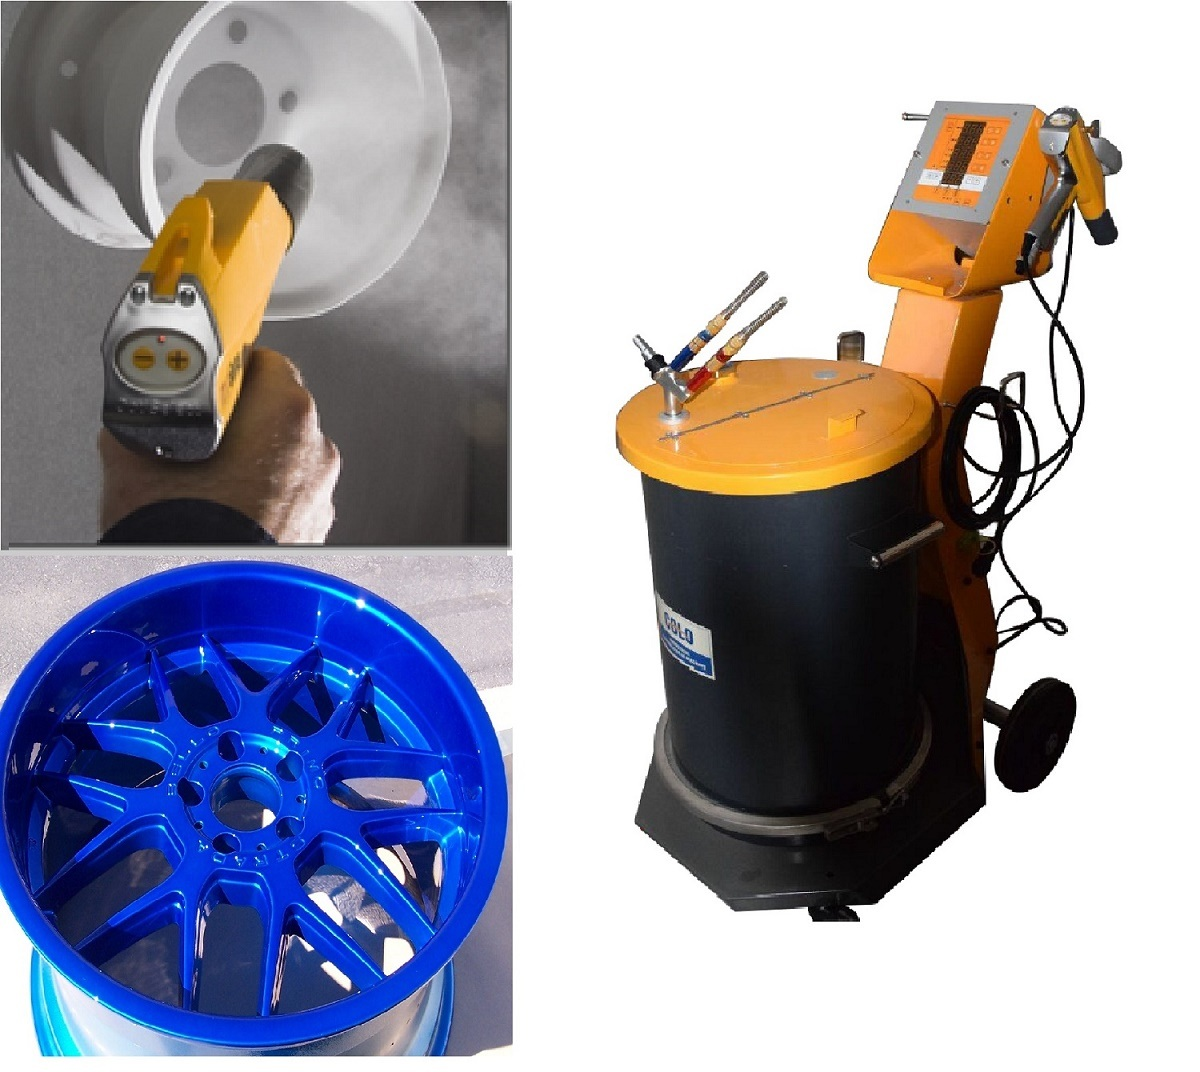 Electrostatic Powder Coating Equipment (Manual spraying Gun)